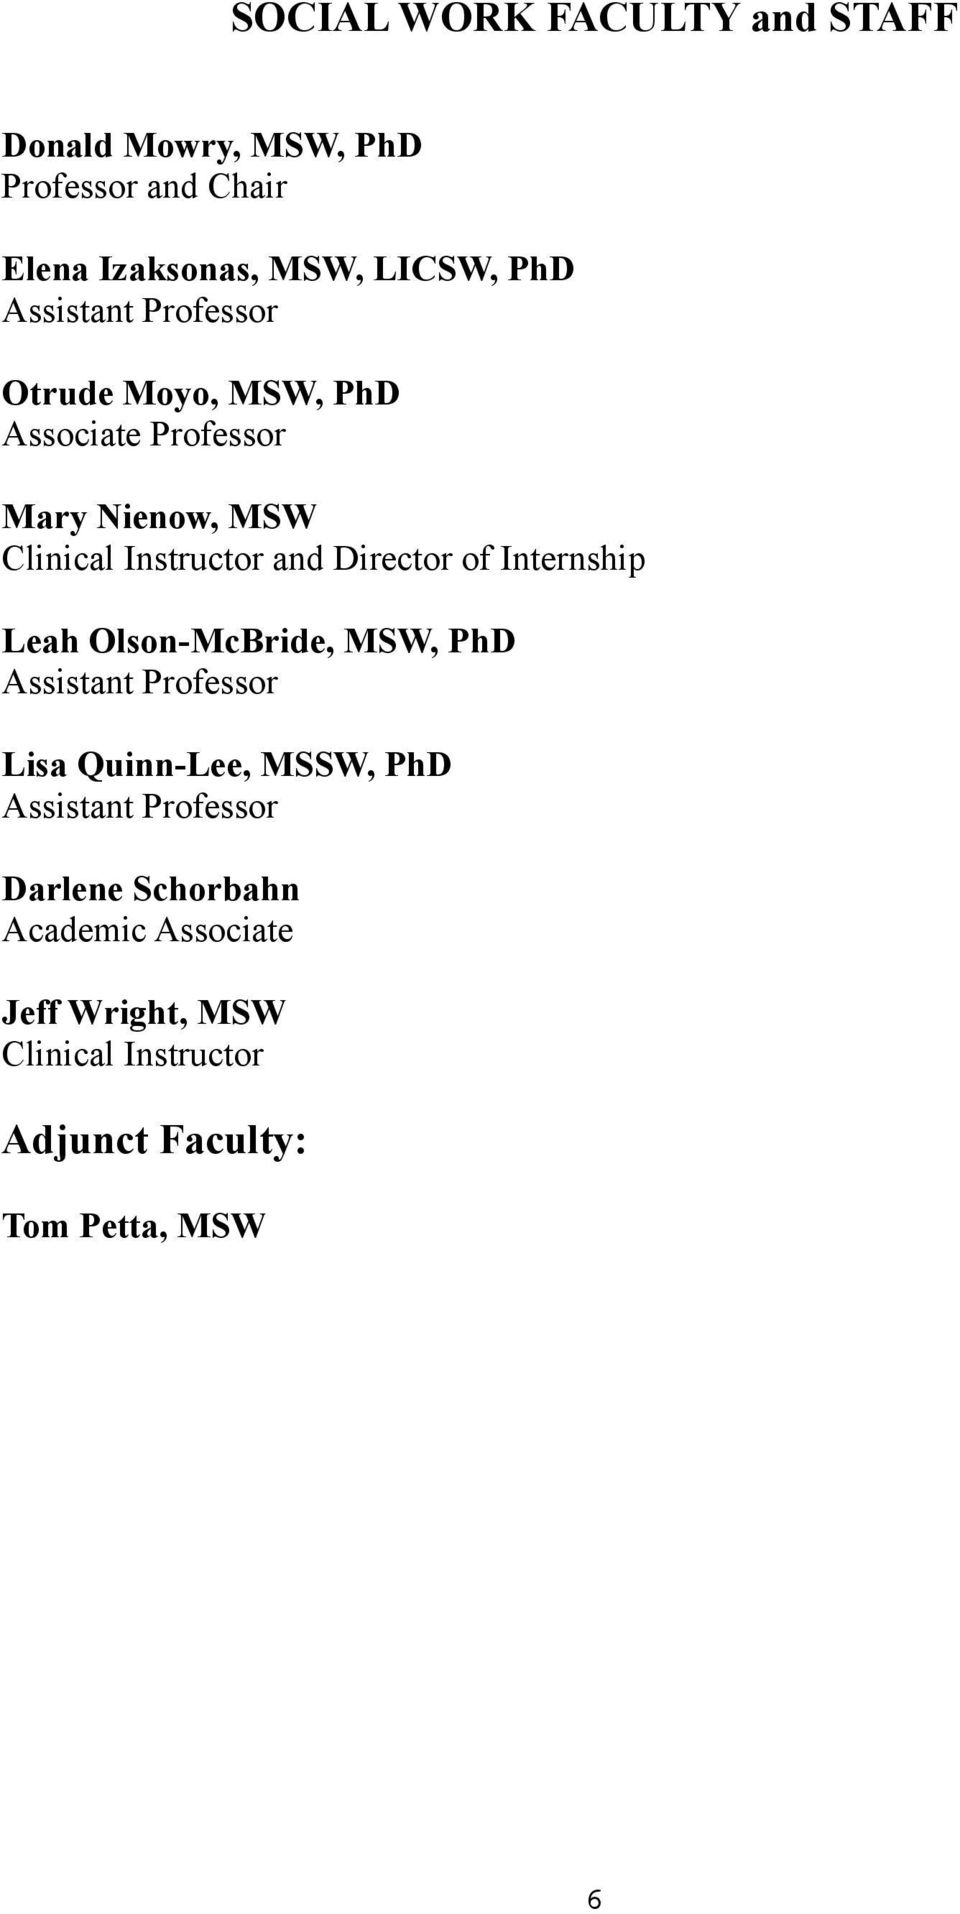 Director of Internship Leah Olson-McBride, MSW, PhD Assistant Professor Lisa Quinn-Lee, MSSW, PhD Assistant